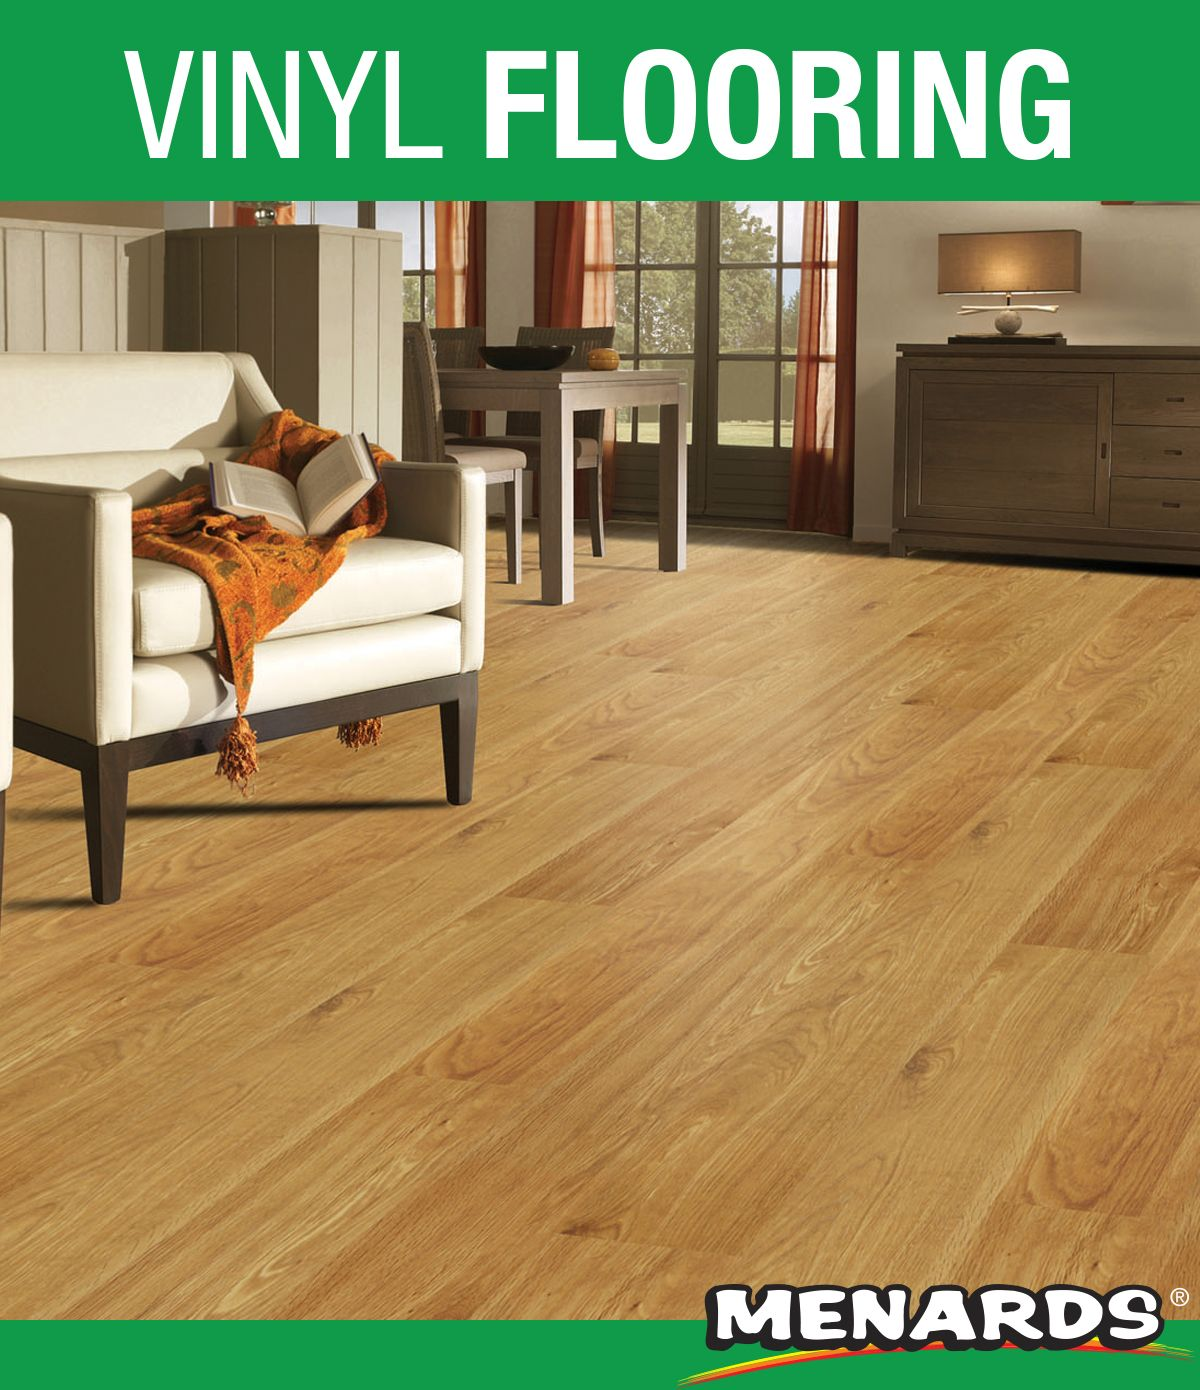 EZ Click luxury vinyl planks feature a beautiful wood